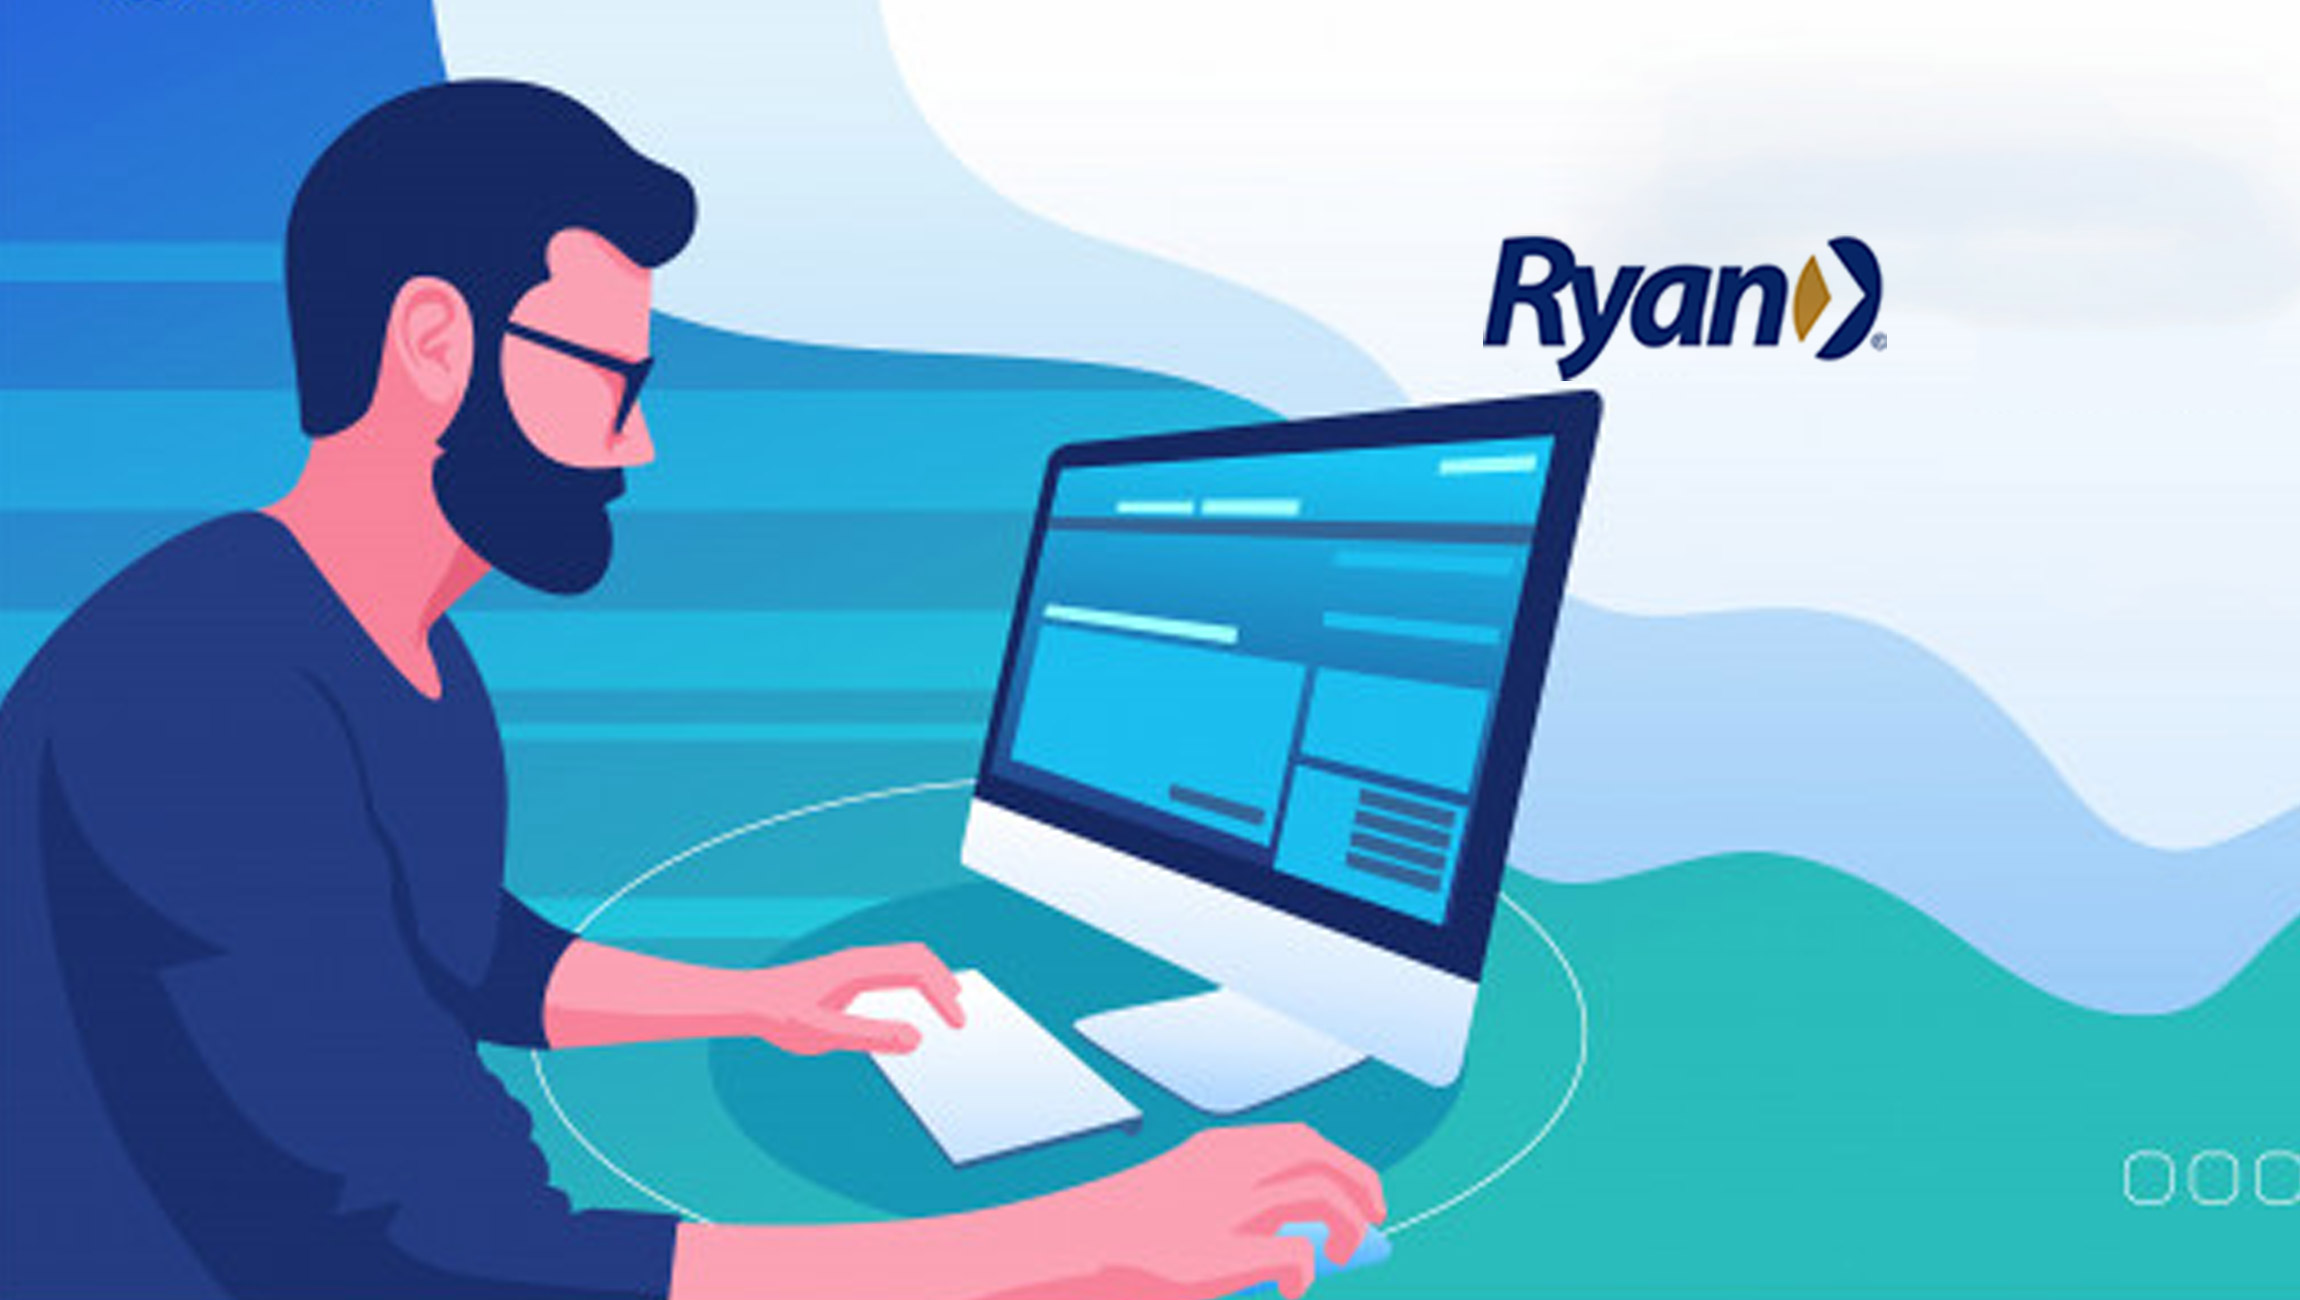 FORTUNE Names Ryan to Its Best Workplaces for Diversity List for Third Straight Year